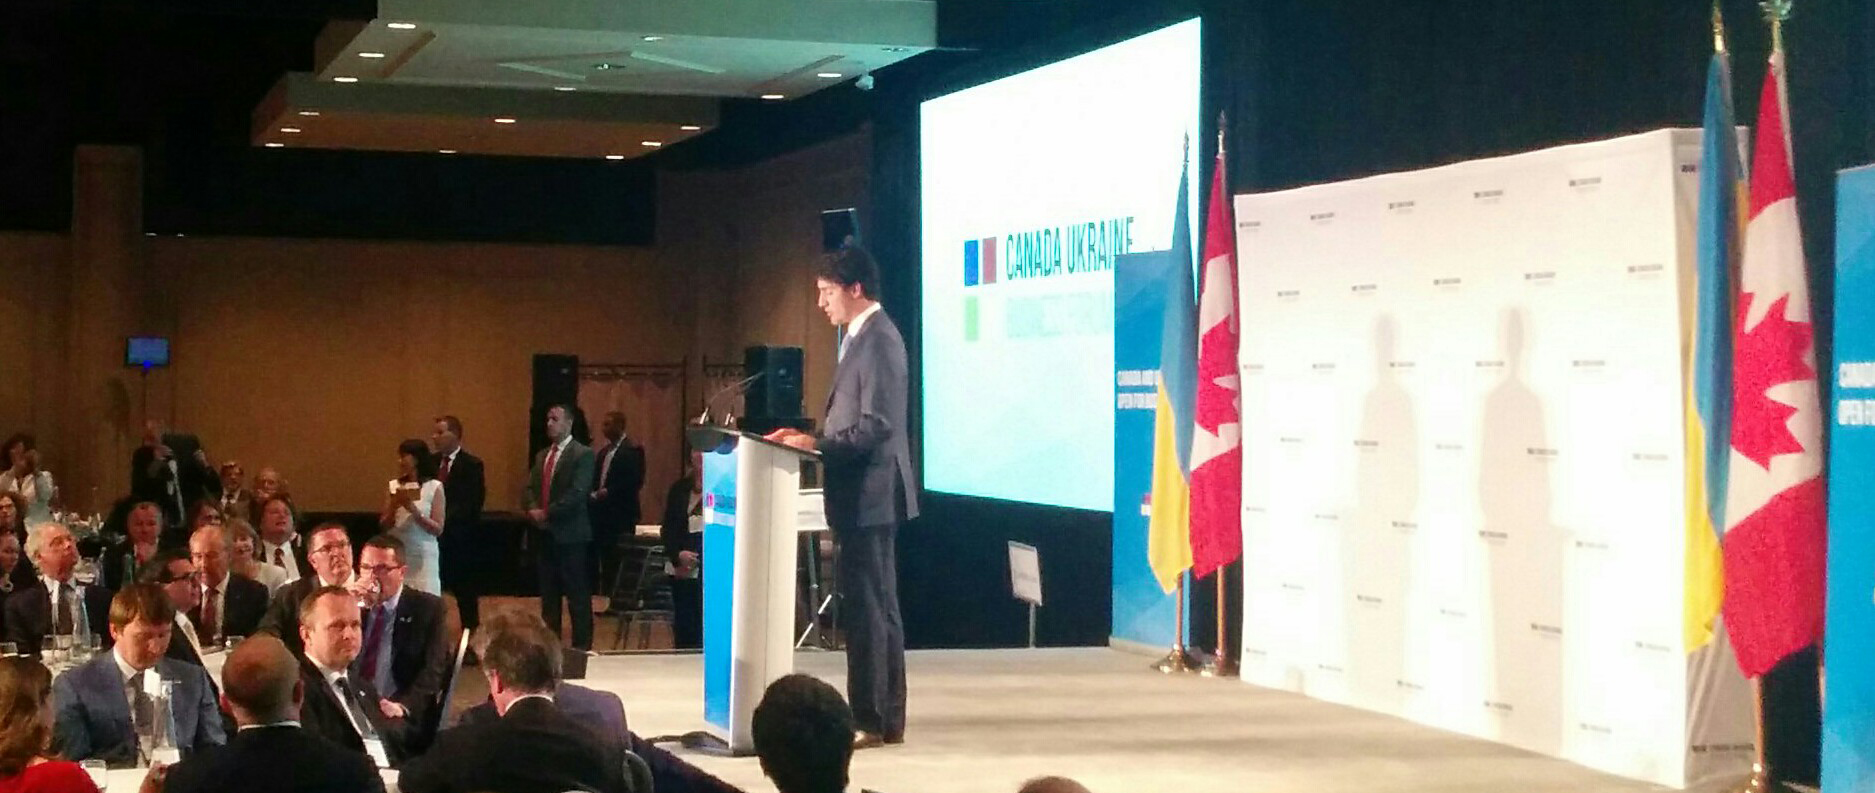 Justin Trudeau at the Canada-Ukraine Business Forum